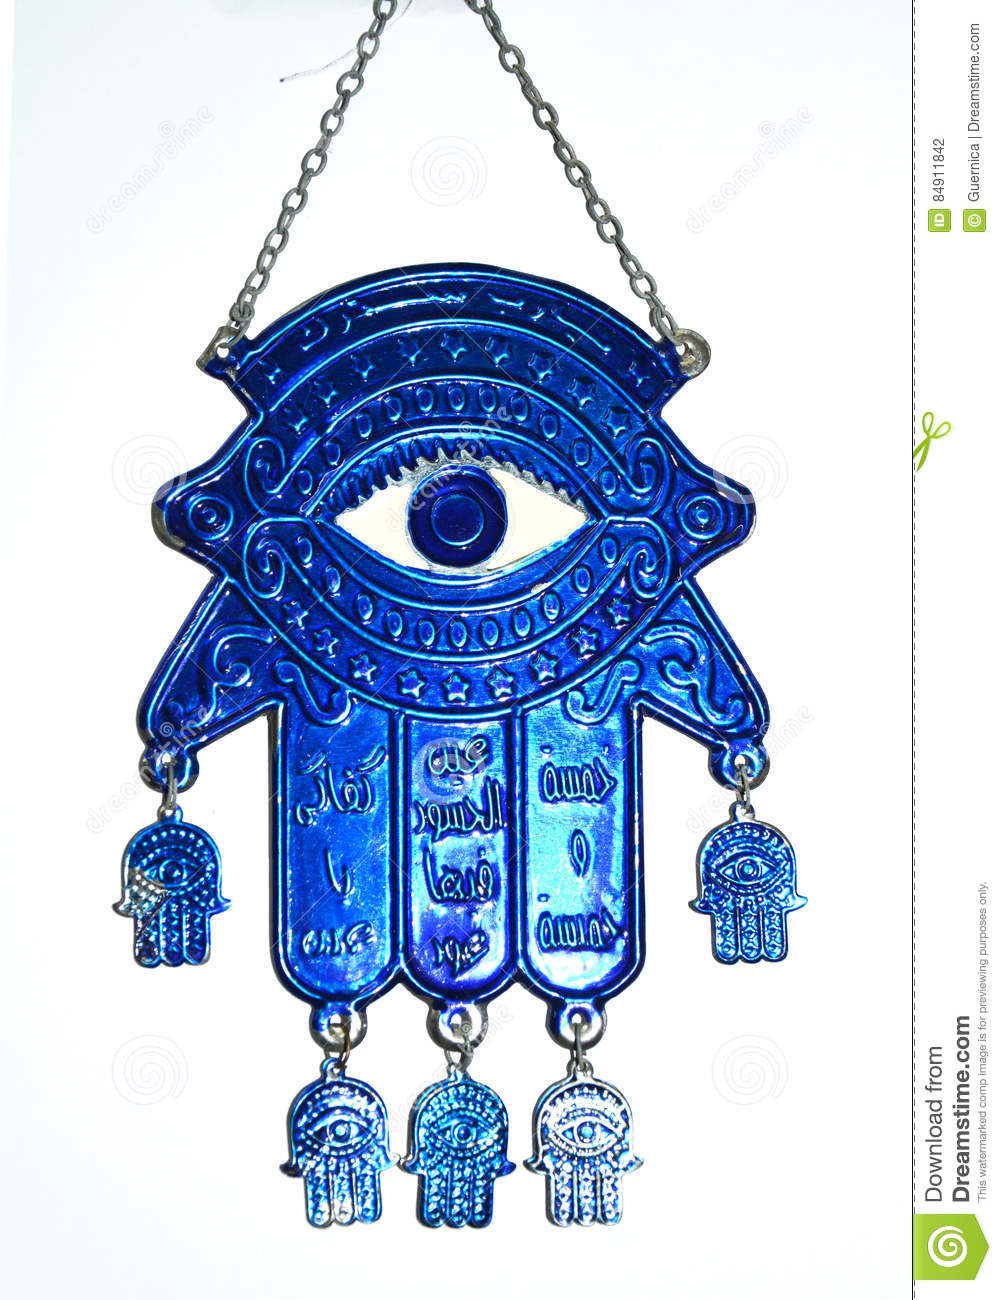 Het Boze Oog Fatima Hand Hamsa Stock Photo. Image Of Background